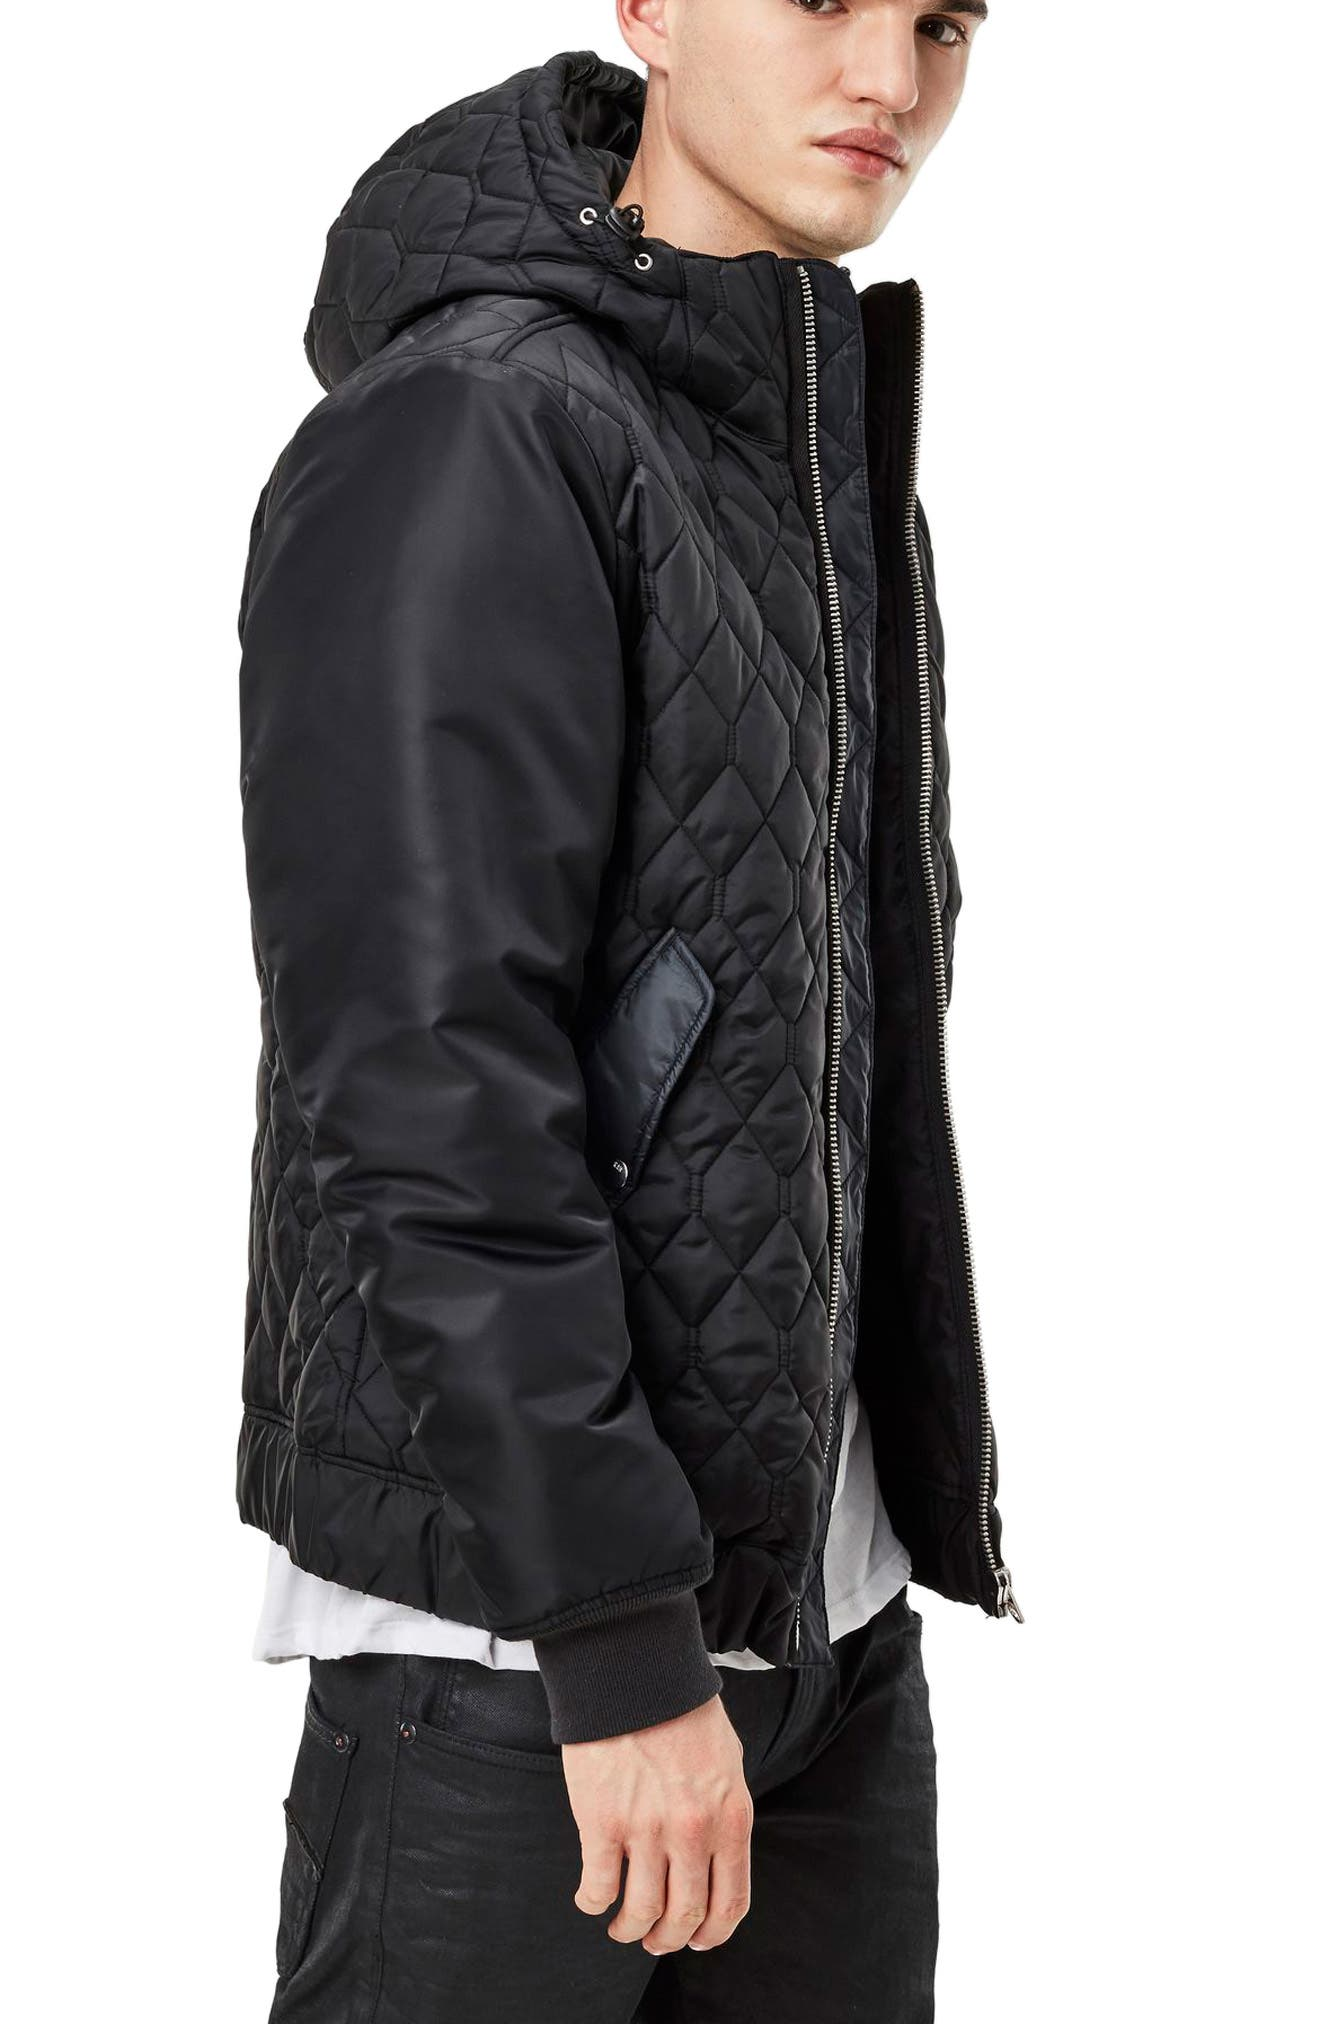 G-STAR RAW,                             Meefic Hybrid Quilted Jacket,                             Alternate thumbnail 3, color,                             001